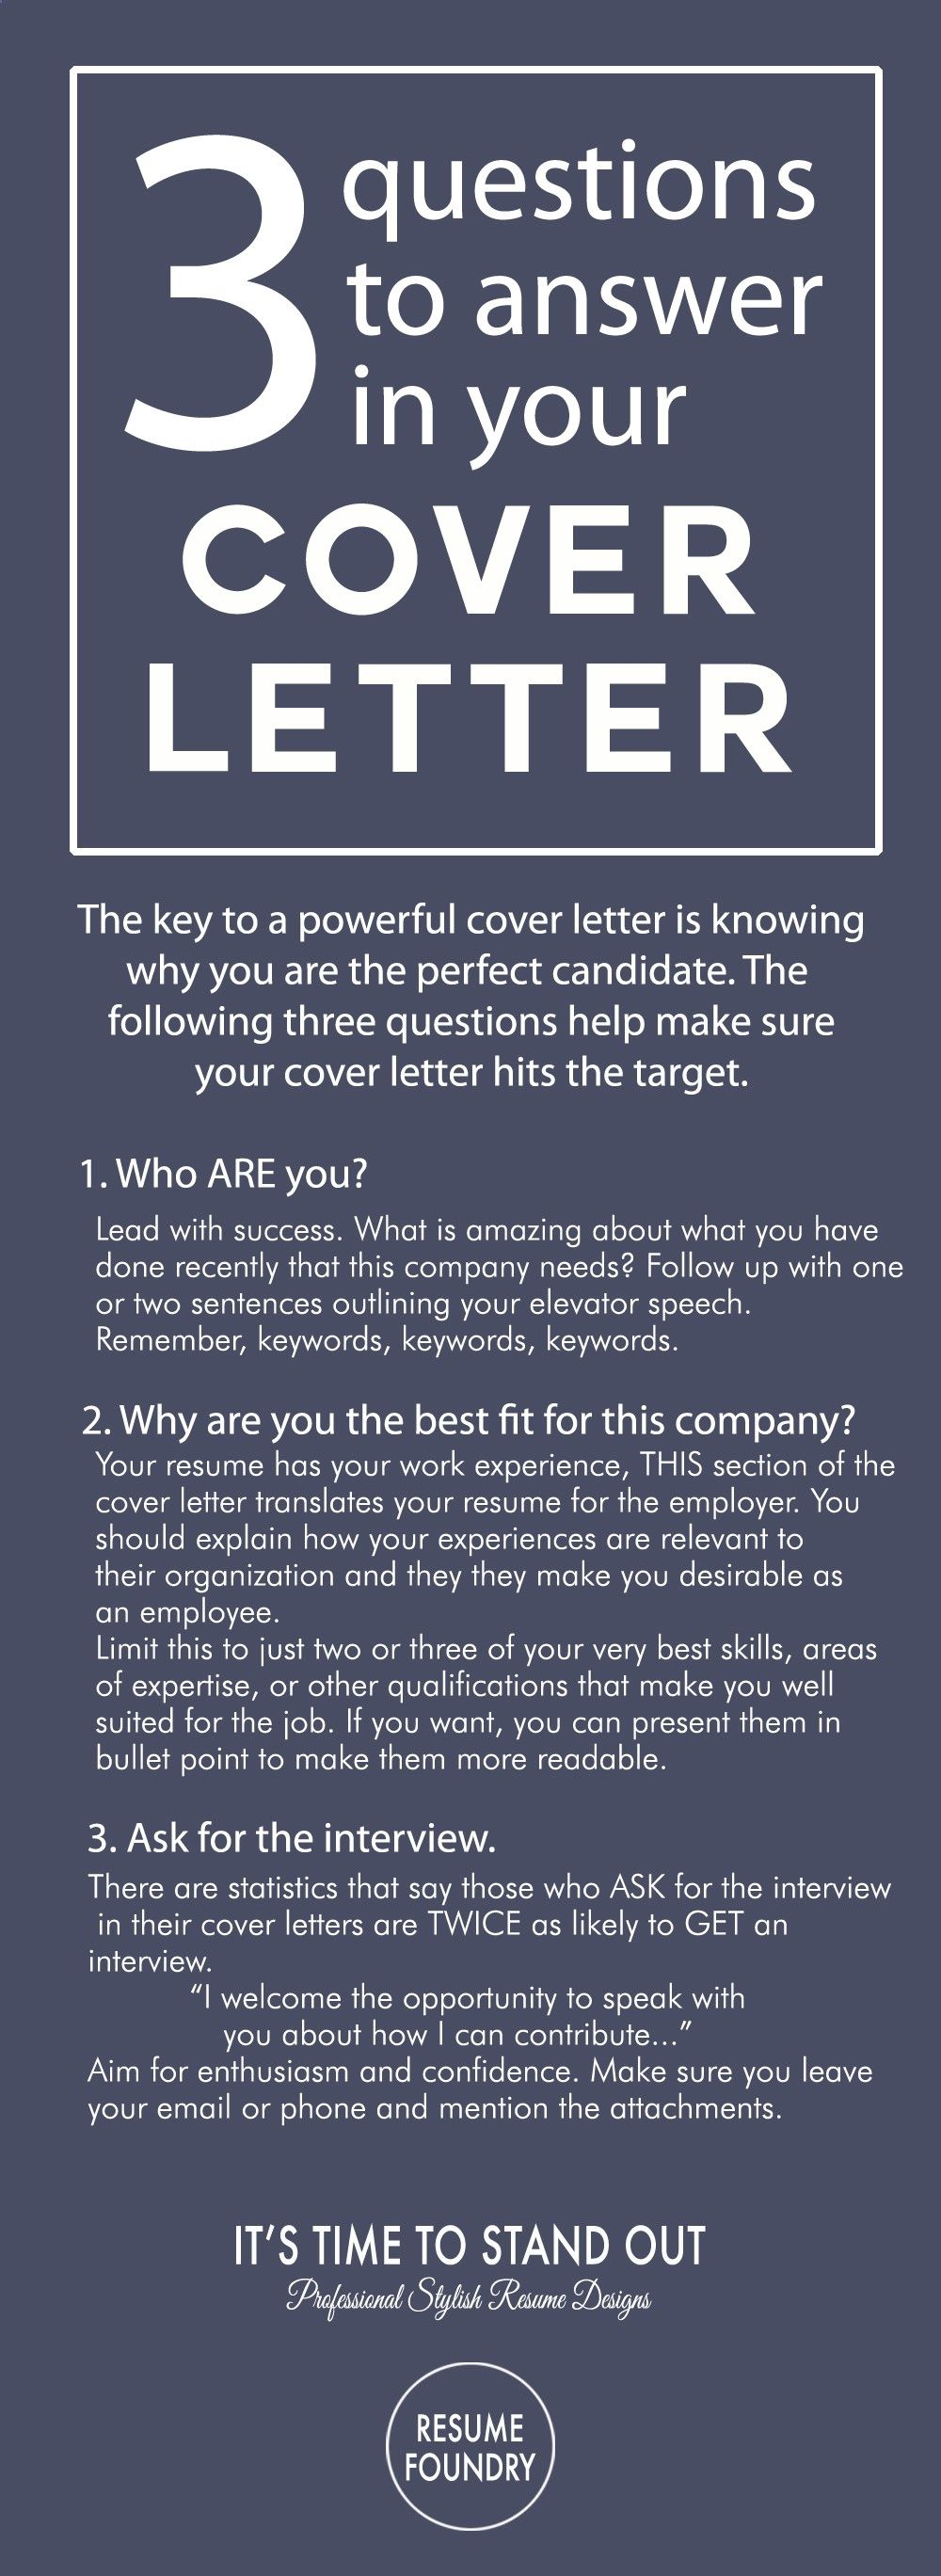 Cover letter tips outline how to write a cover letter cover letter tips outline how to write a cover letter madrichimfo Choice Image